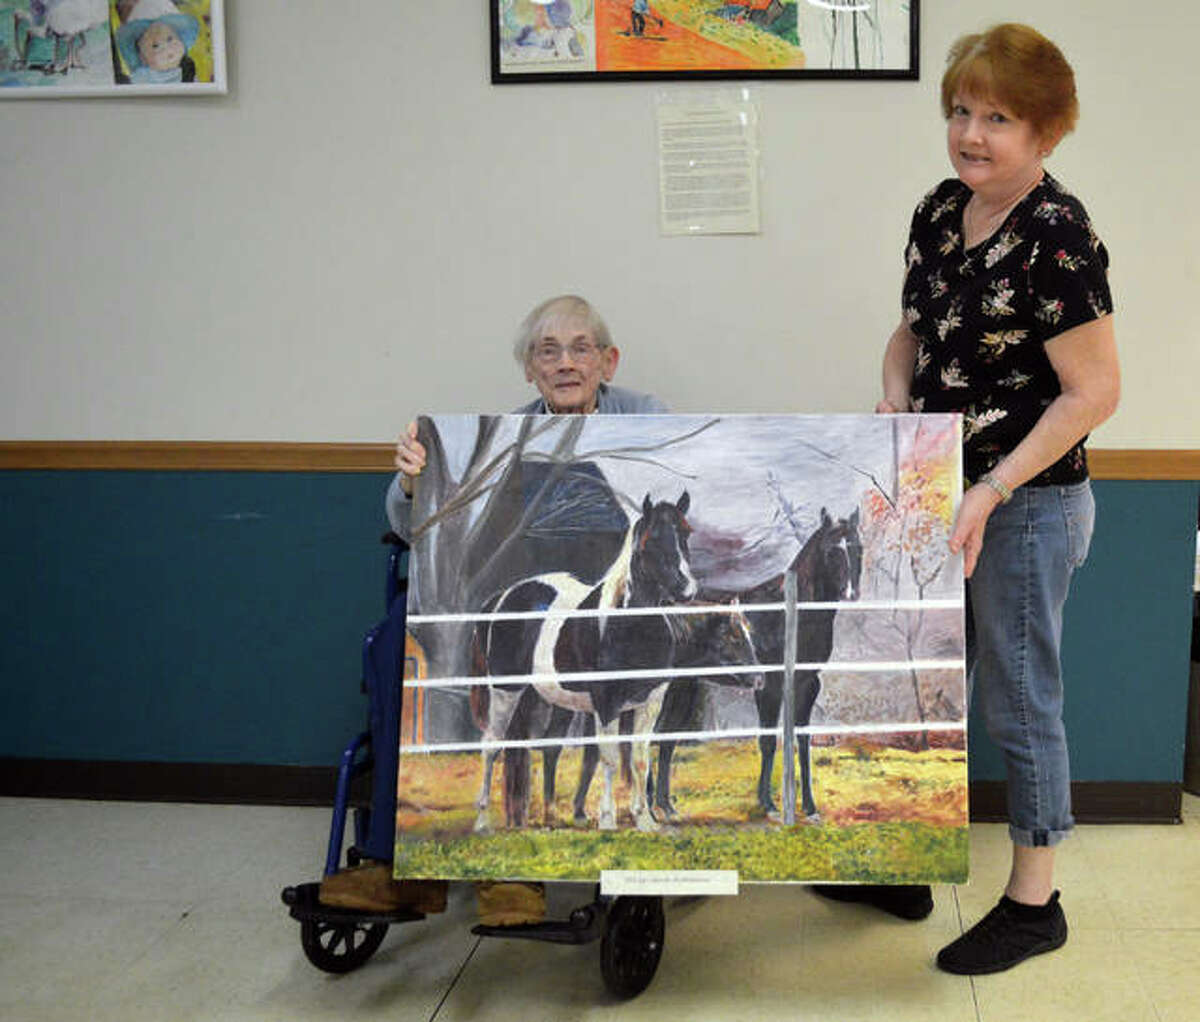 Carole Anne (Davis) Kotkiewicz, left, and her daughter, Lin Dillier, with one of the paintings by the 83-year-old Kotkiewicz that are now on display at Main Street Community Center.